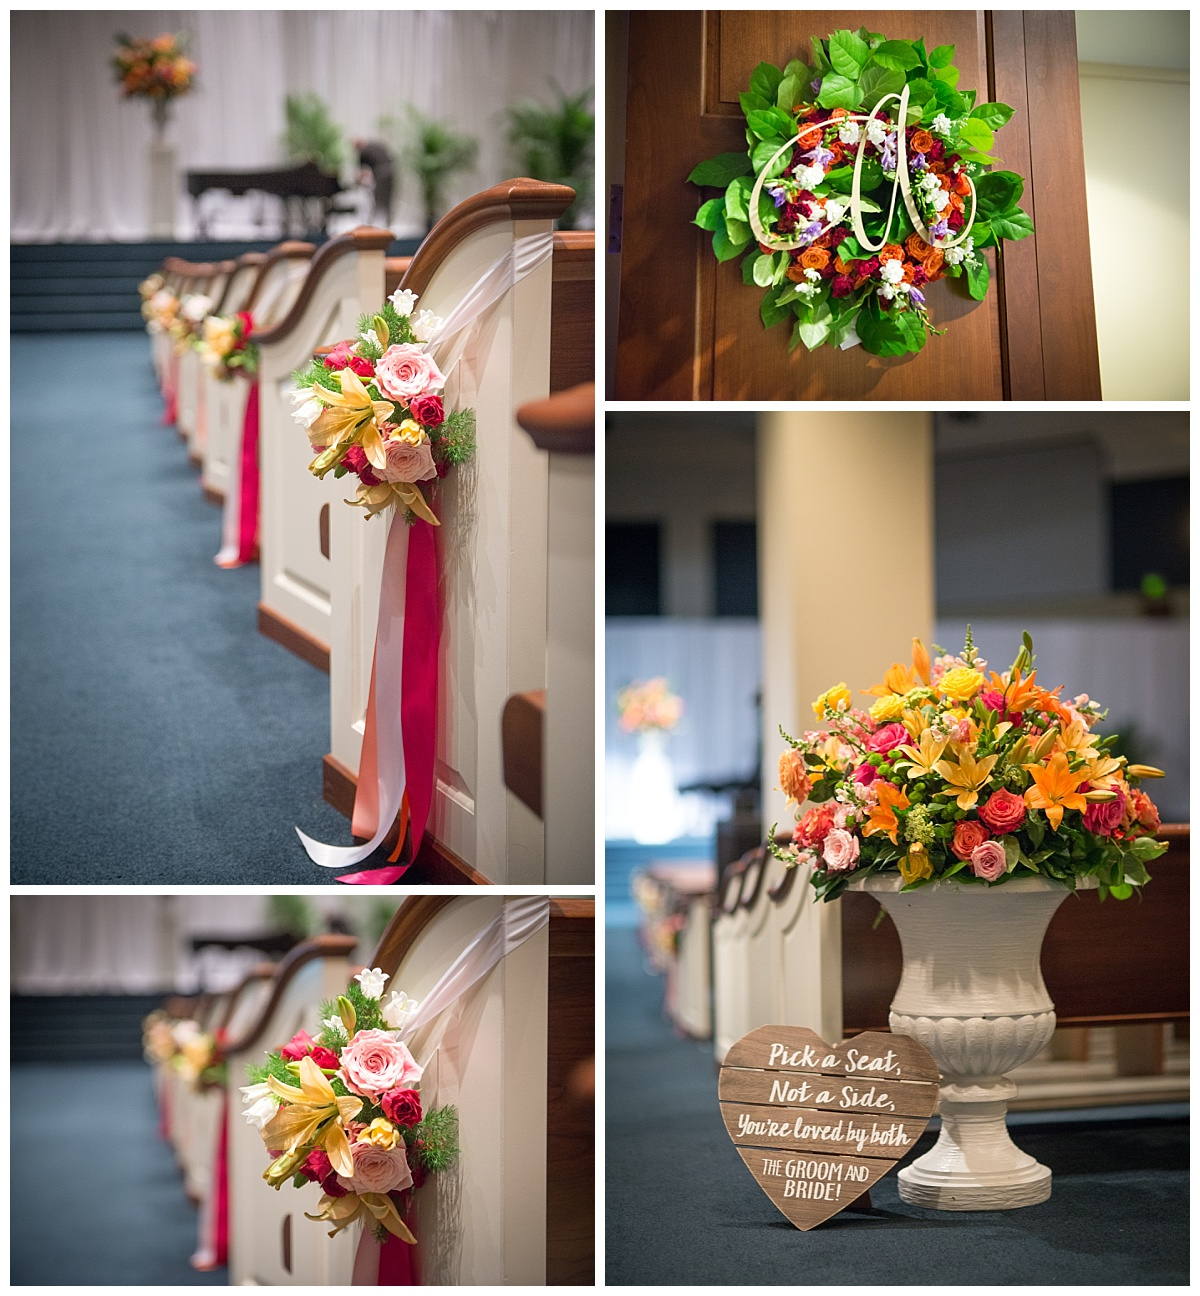 Church decorations